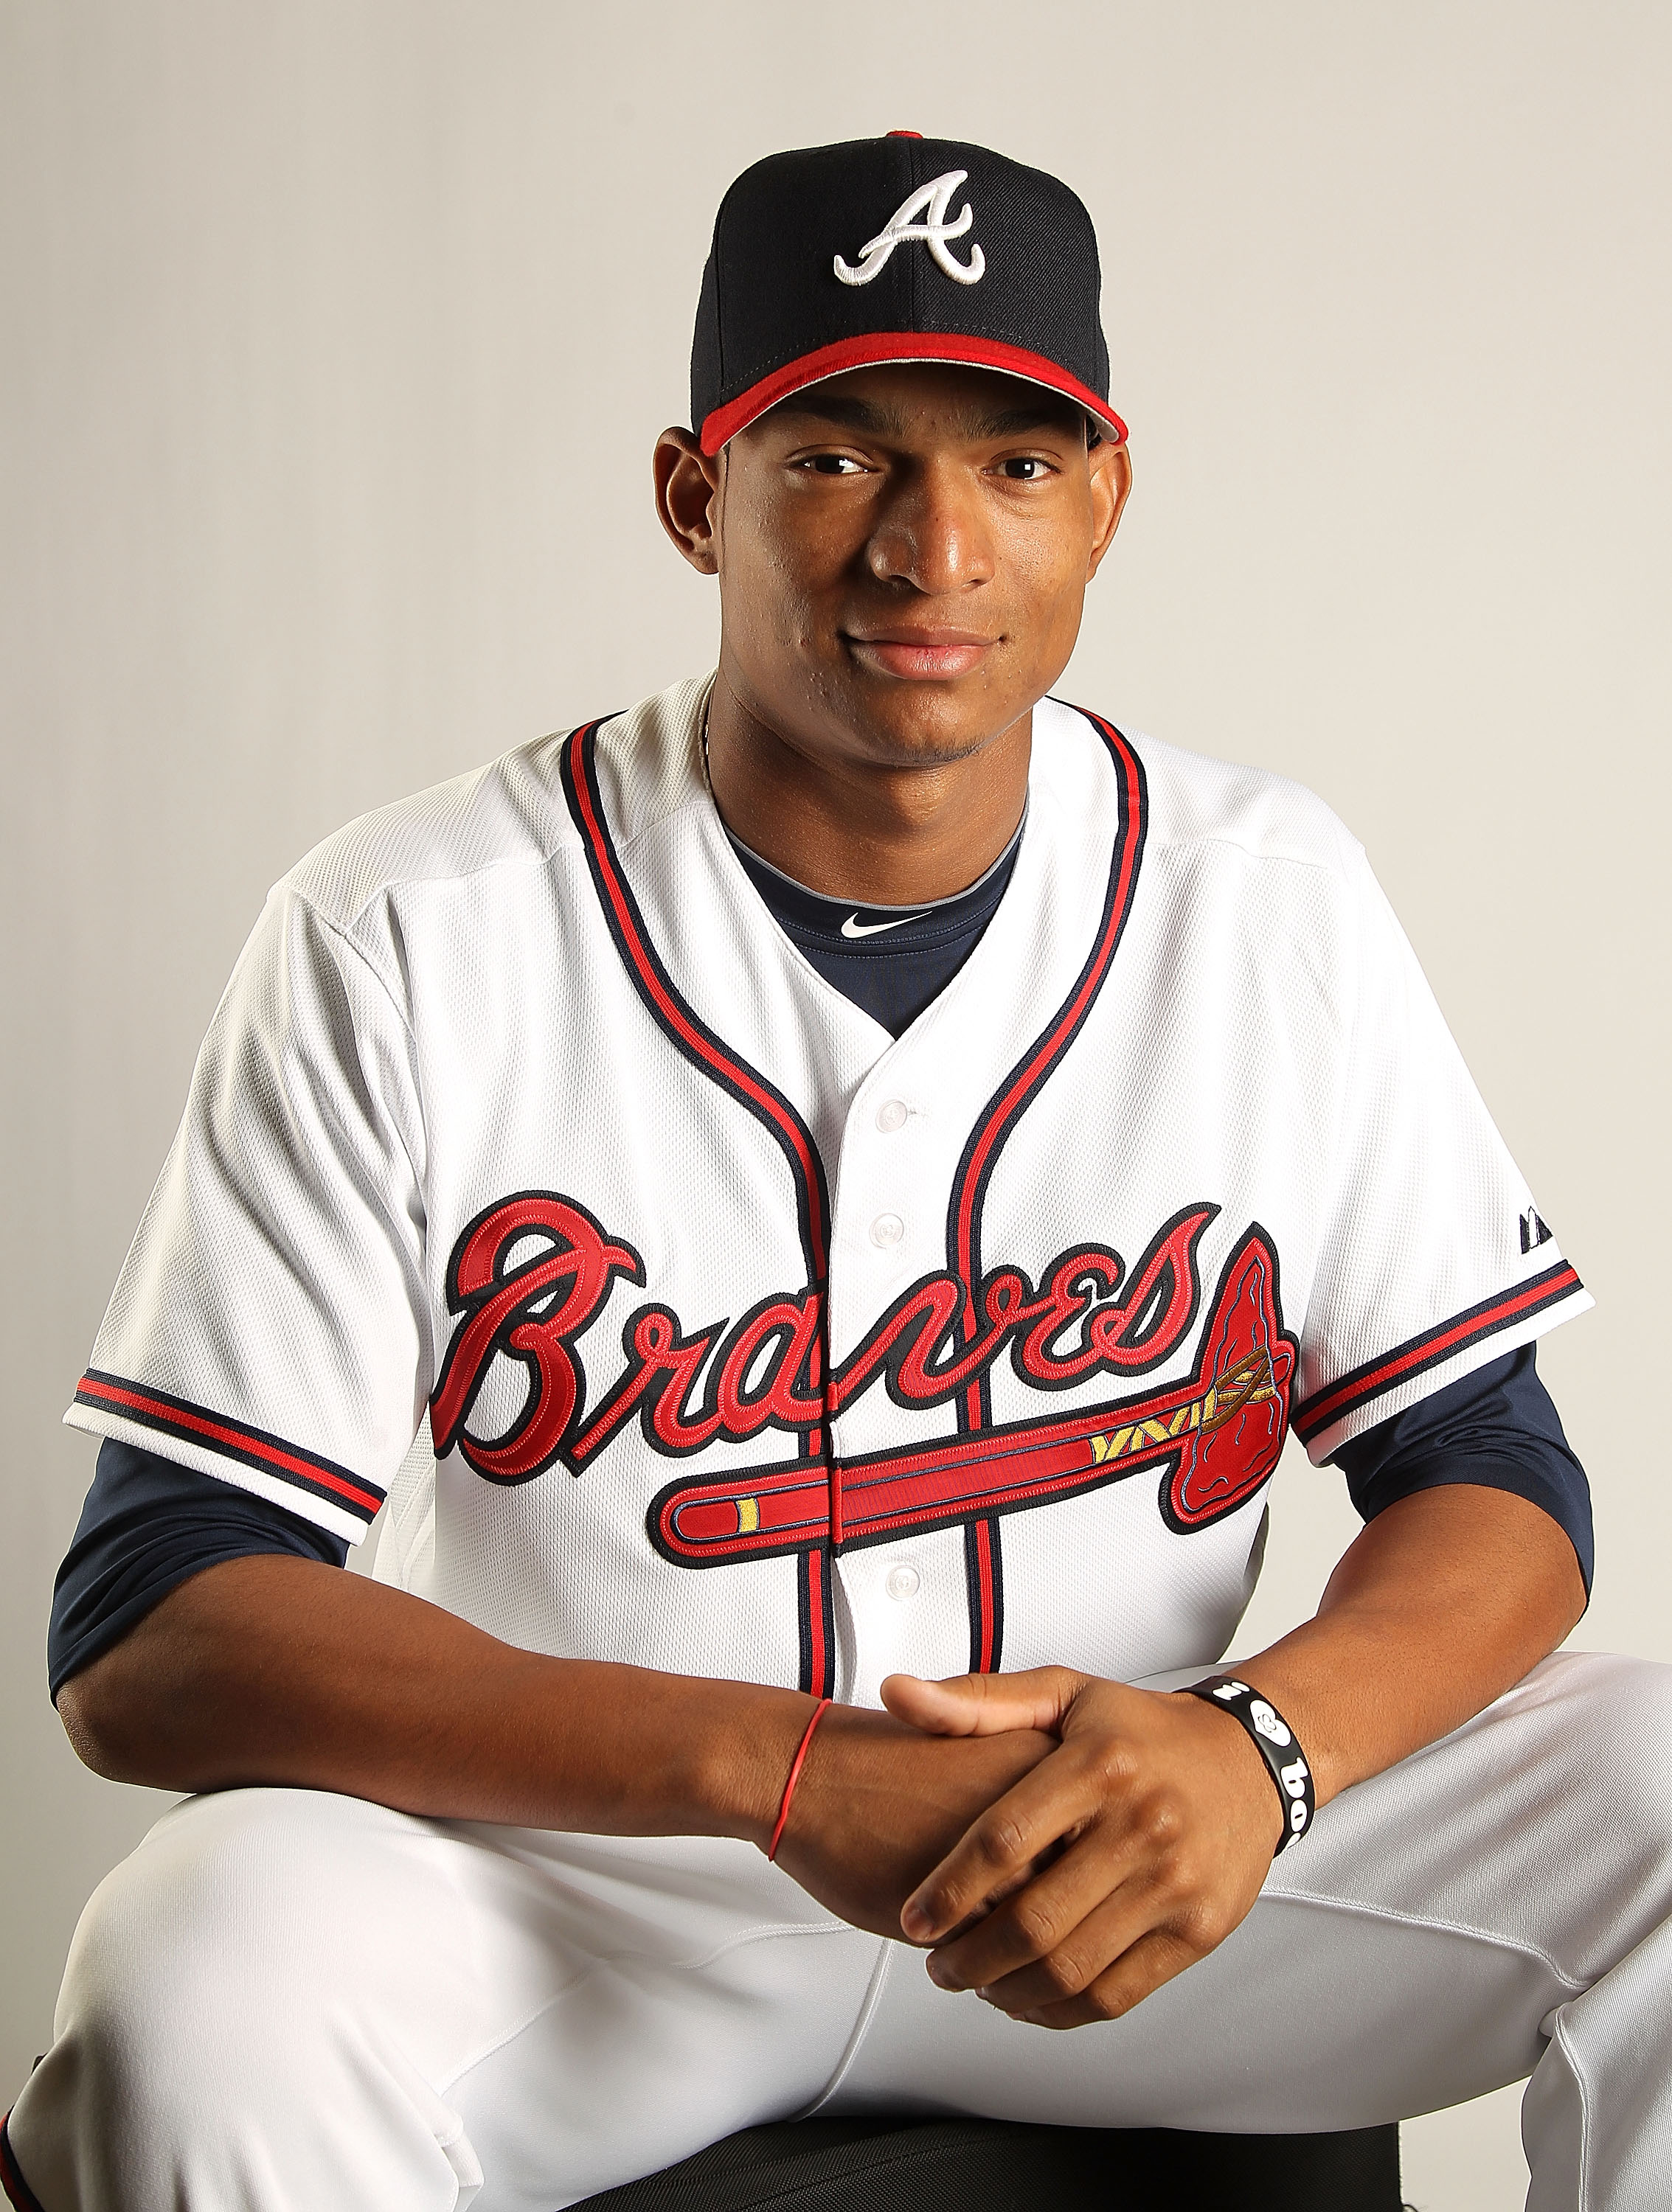 LAKE BUENA VISTA, FL - FEBRUARY 21: Christian Bethancourt #73 of the Atlanta Braves during Photo Day at  Champion Stadium at ESPN Wide World of Sports of Complex on February 21, 2011 in Lake Buena Vista, Florida.  (Photo by Mike Ehrmann/Getty Images)